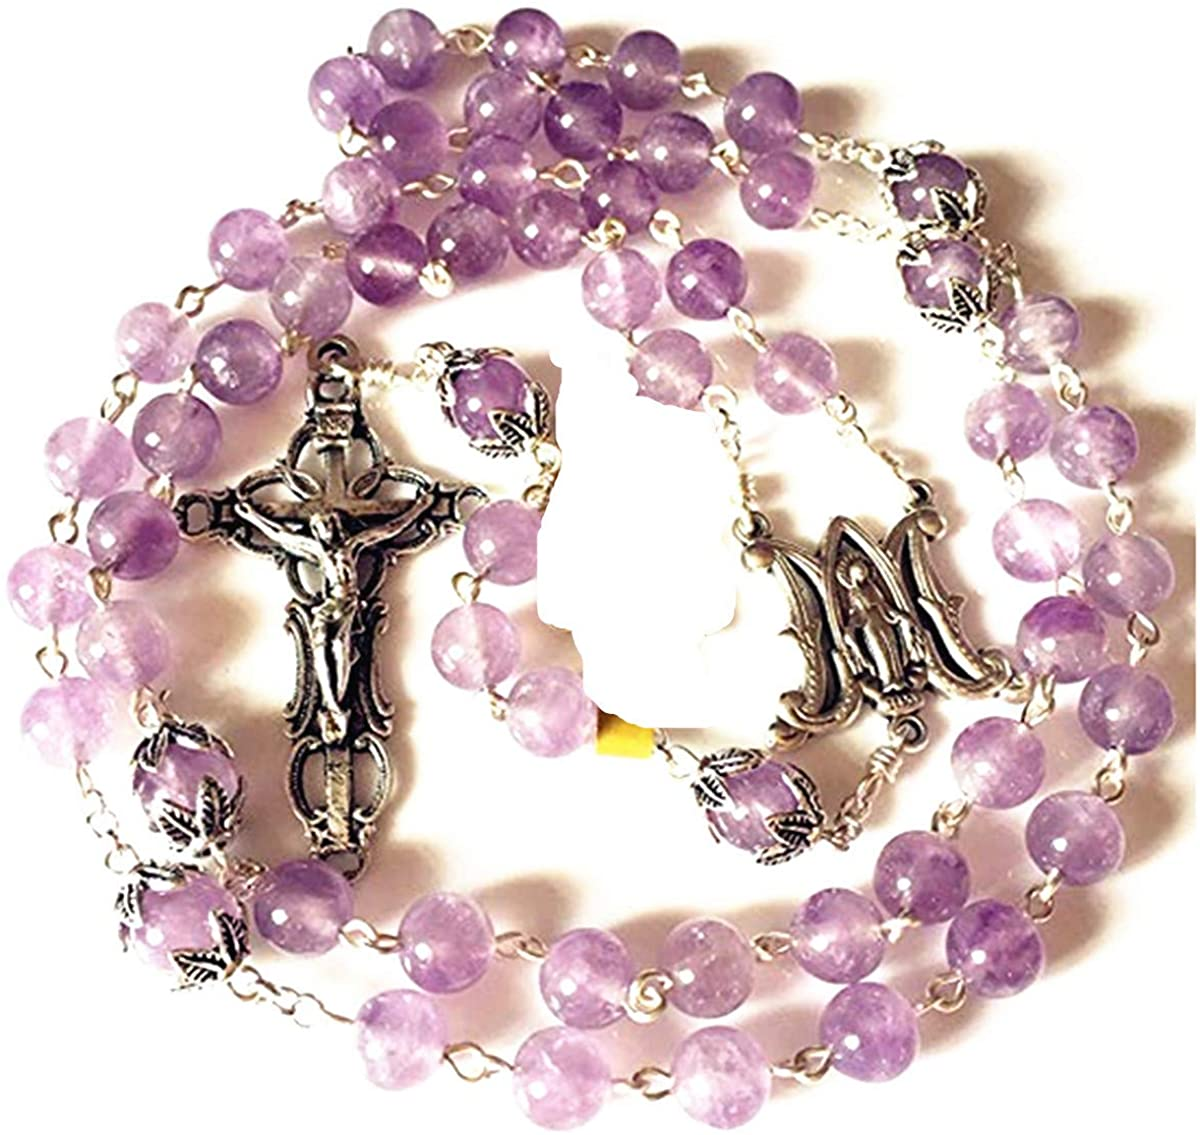 elegantmedical Handmade Lavender Light Purple Crystal ROSE ROSARY NECKLACE Italy Cross Catholic gifts sterling silver beads caps